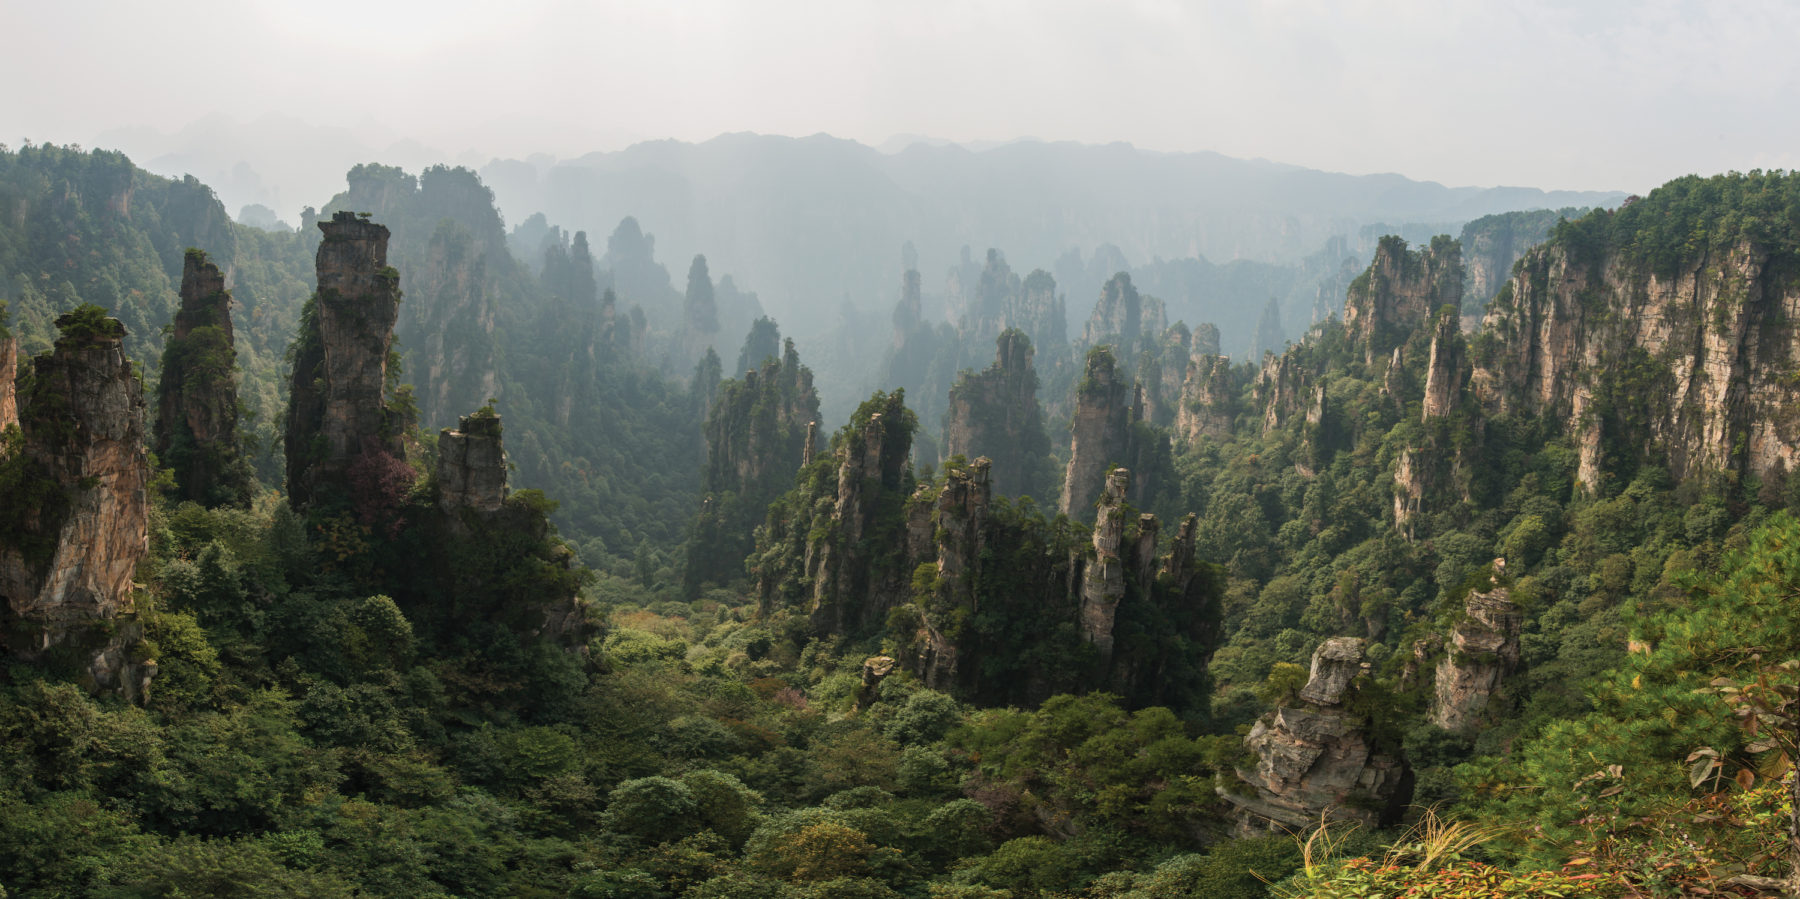 Zhangjiajie National Forest Park, China. Photo: Chensiyuan.